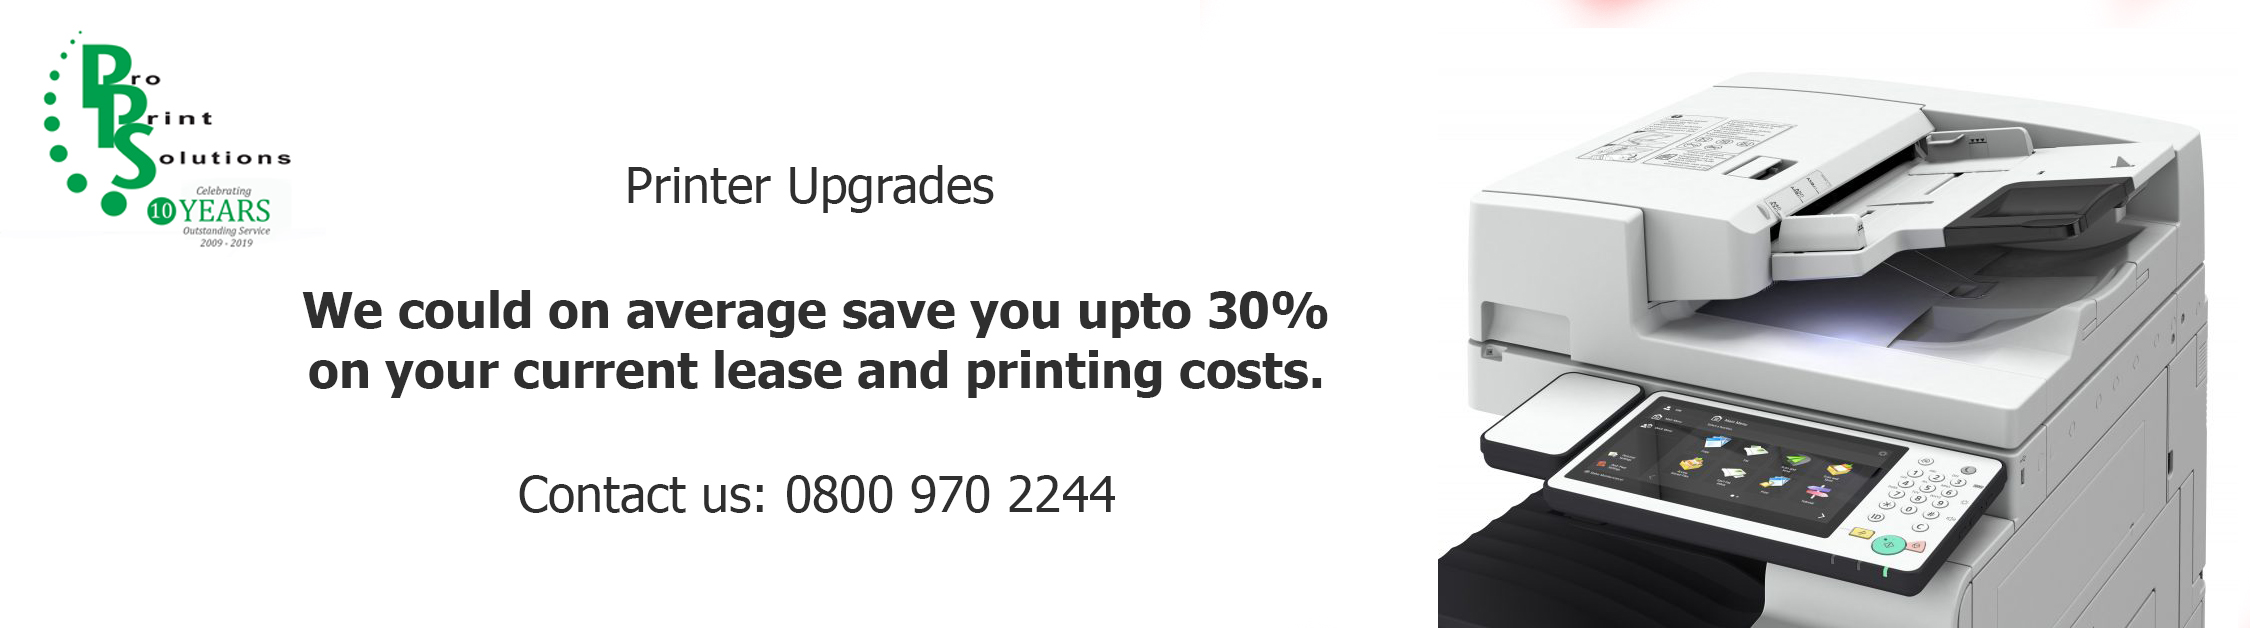 PRINTER SUPPLIER WIGAN